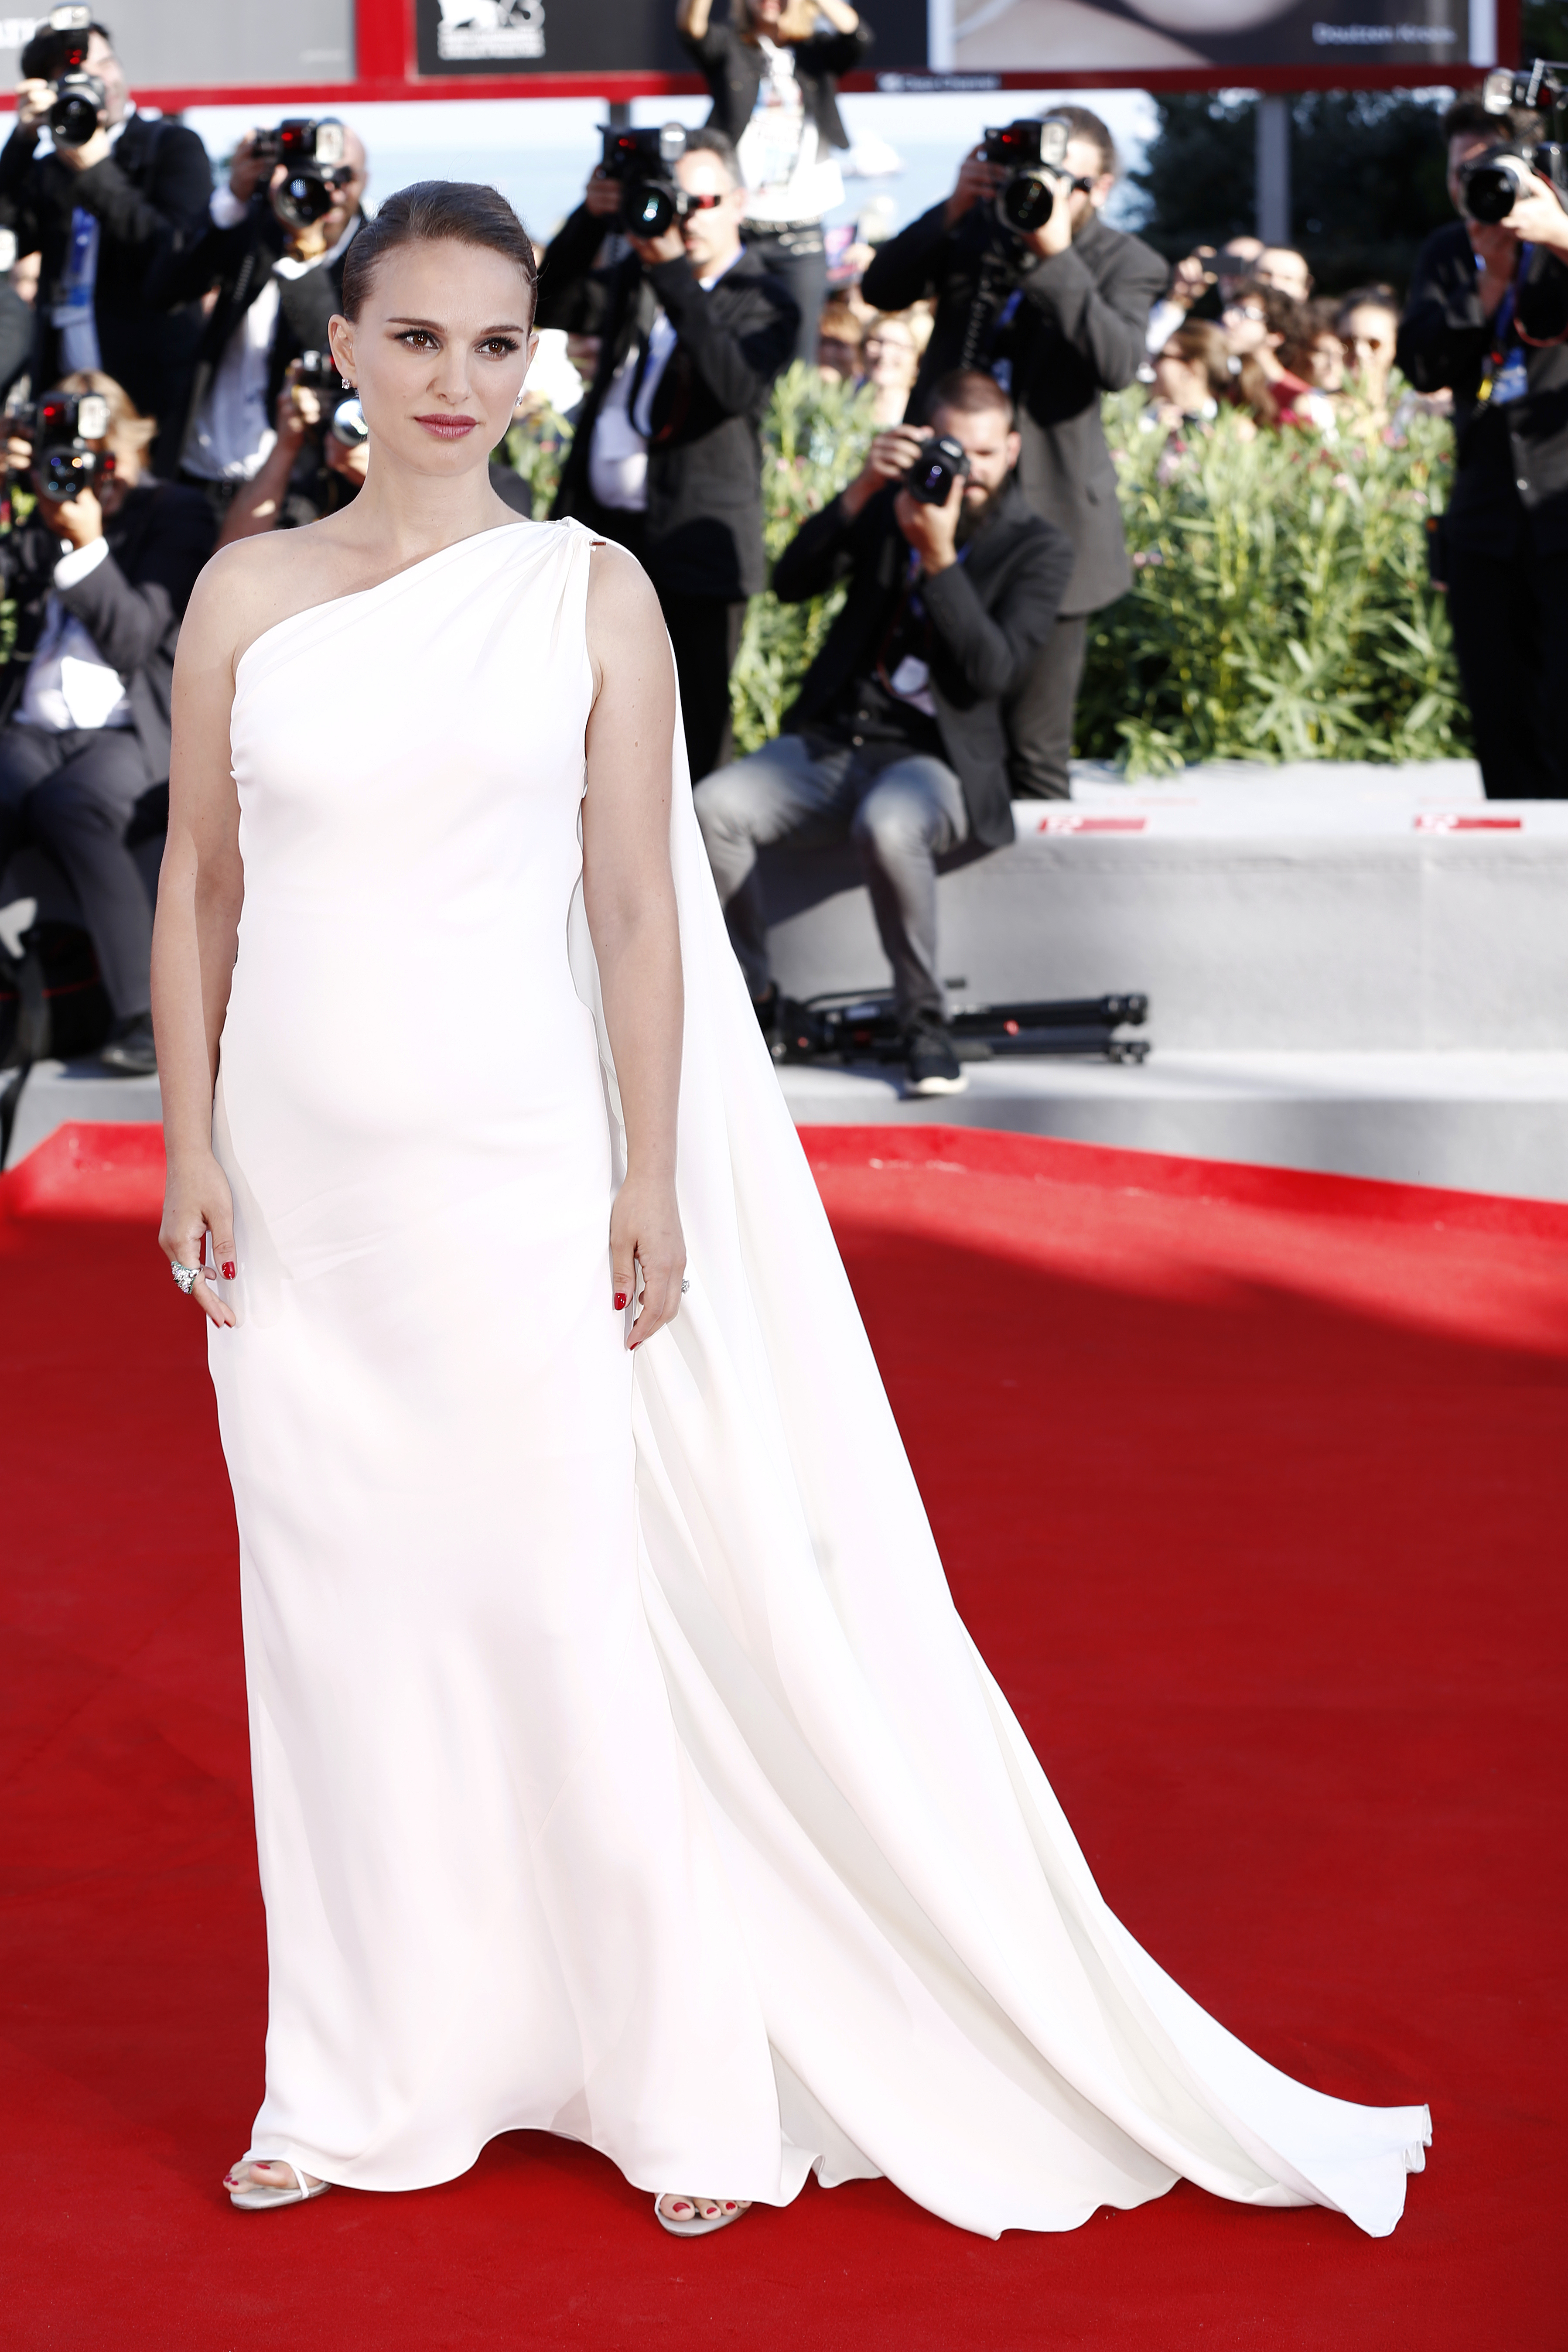 Natalie Portman Who Will Be Best Dressed